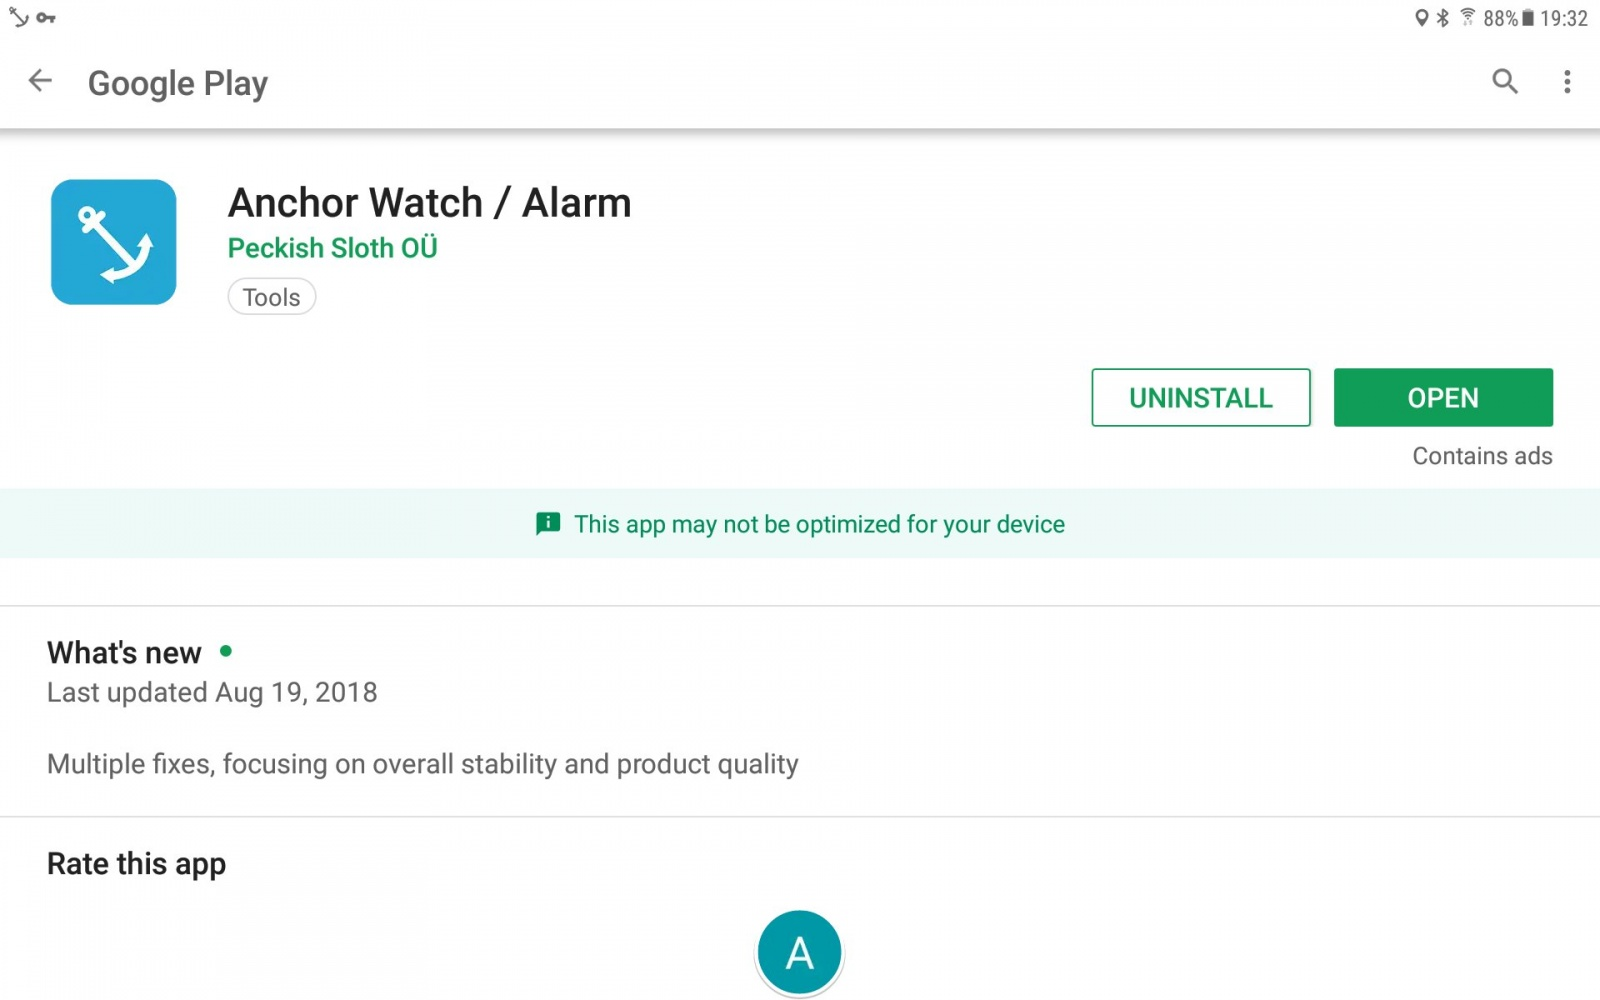 Best Anchor Watch/Alert/Alarms apps? - Cruisers & Sailing Forums